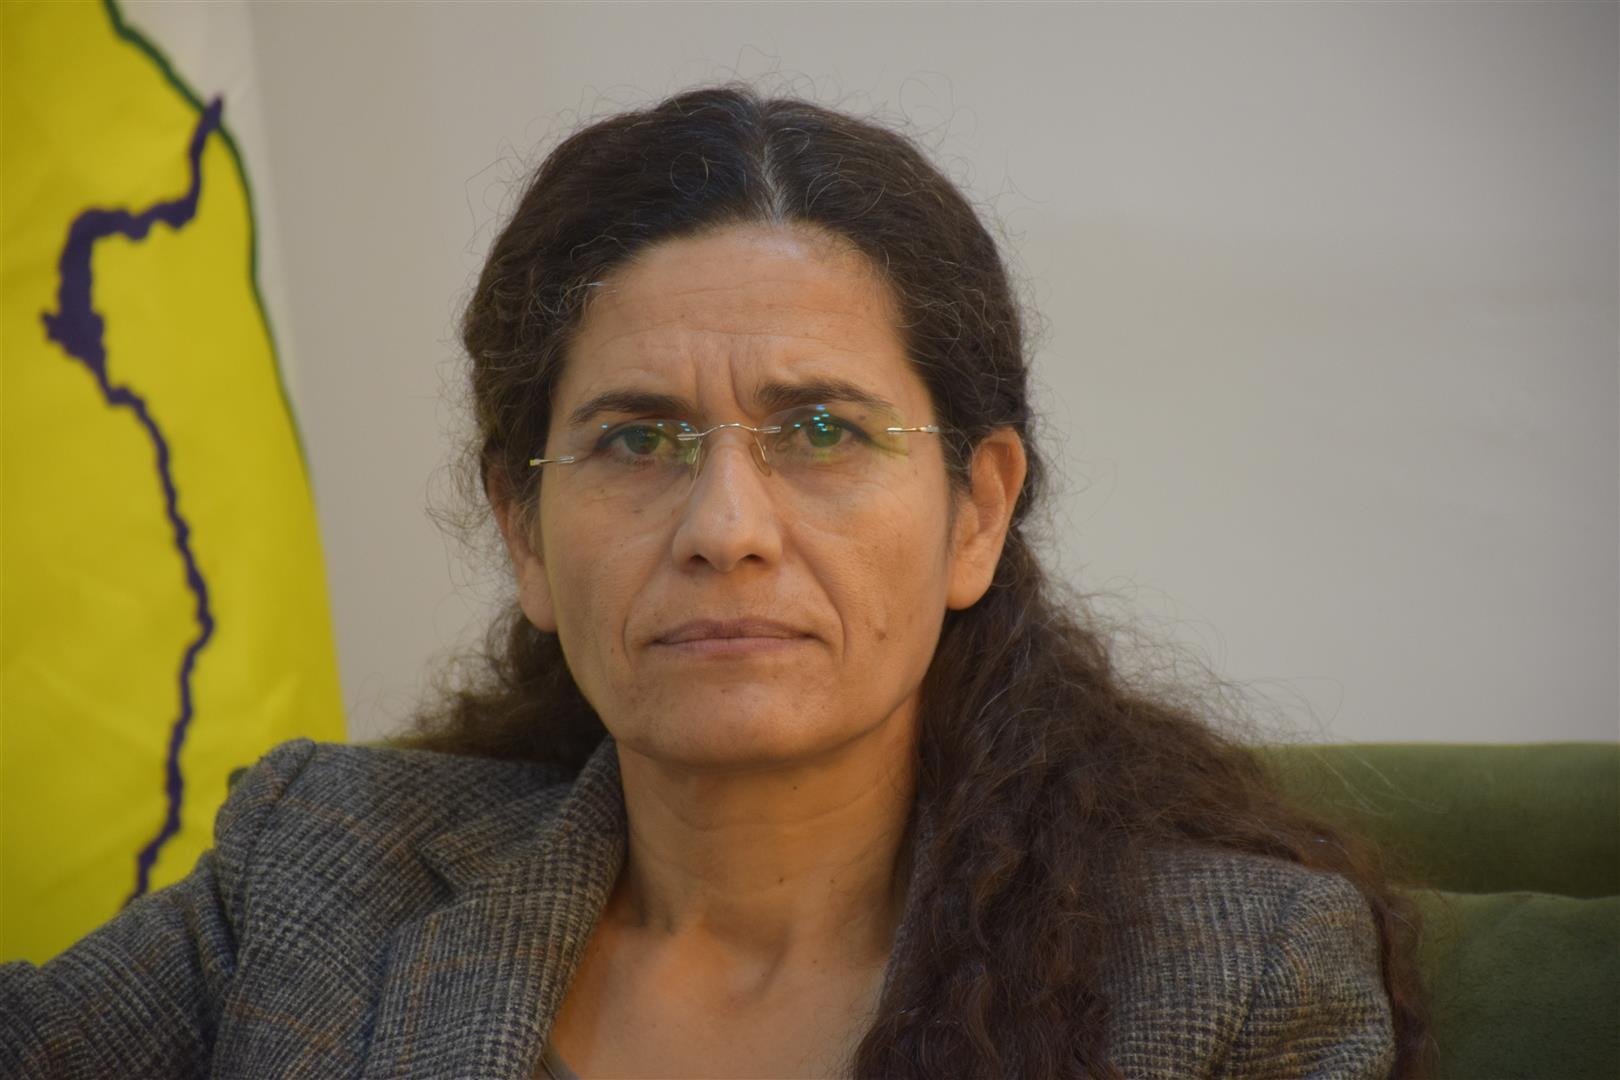 Photo of ILHAM EHMED:  HEWLDANÊN HÊZÊN DERVE YÊN JI BO DANÎNA DESTÛREKE NÛ JI SÛRIYÊ RE TÊK ÇÛYE